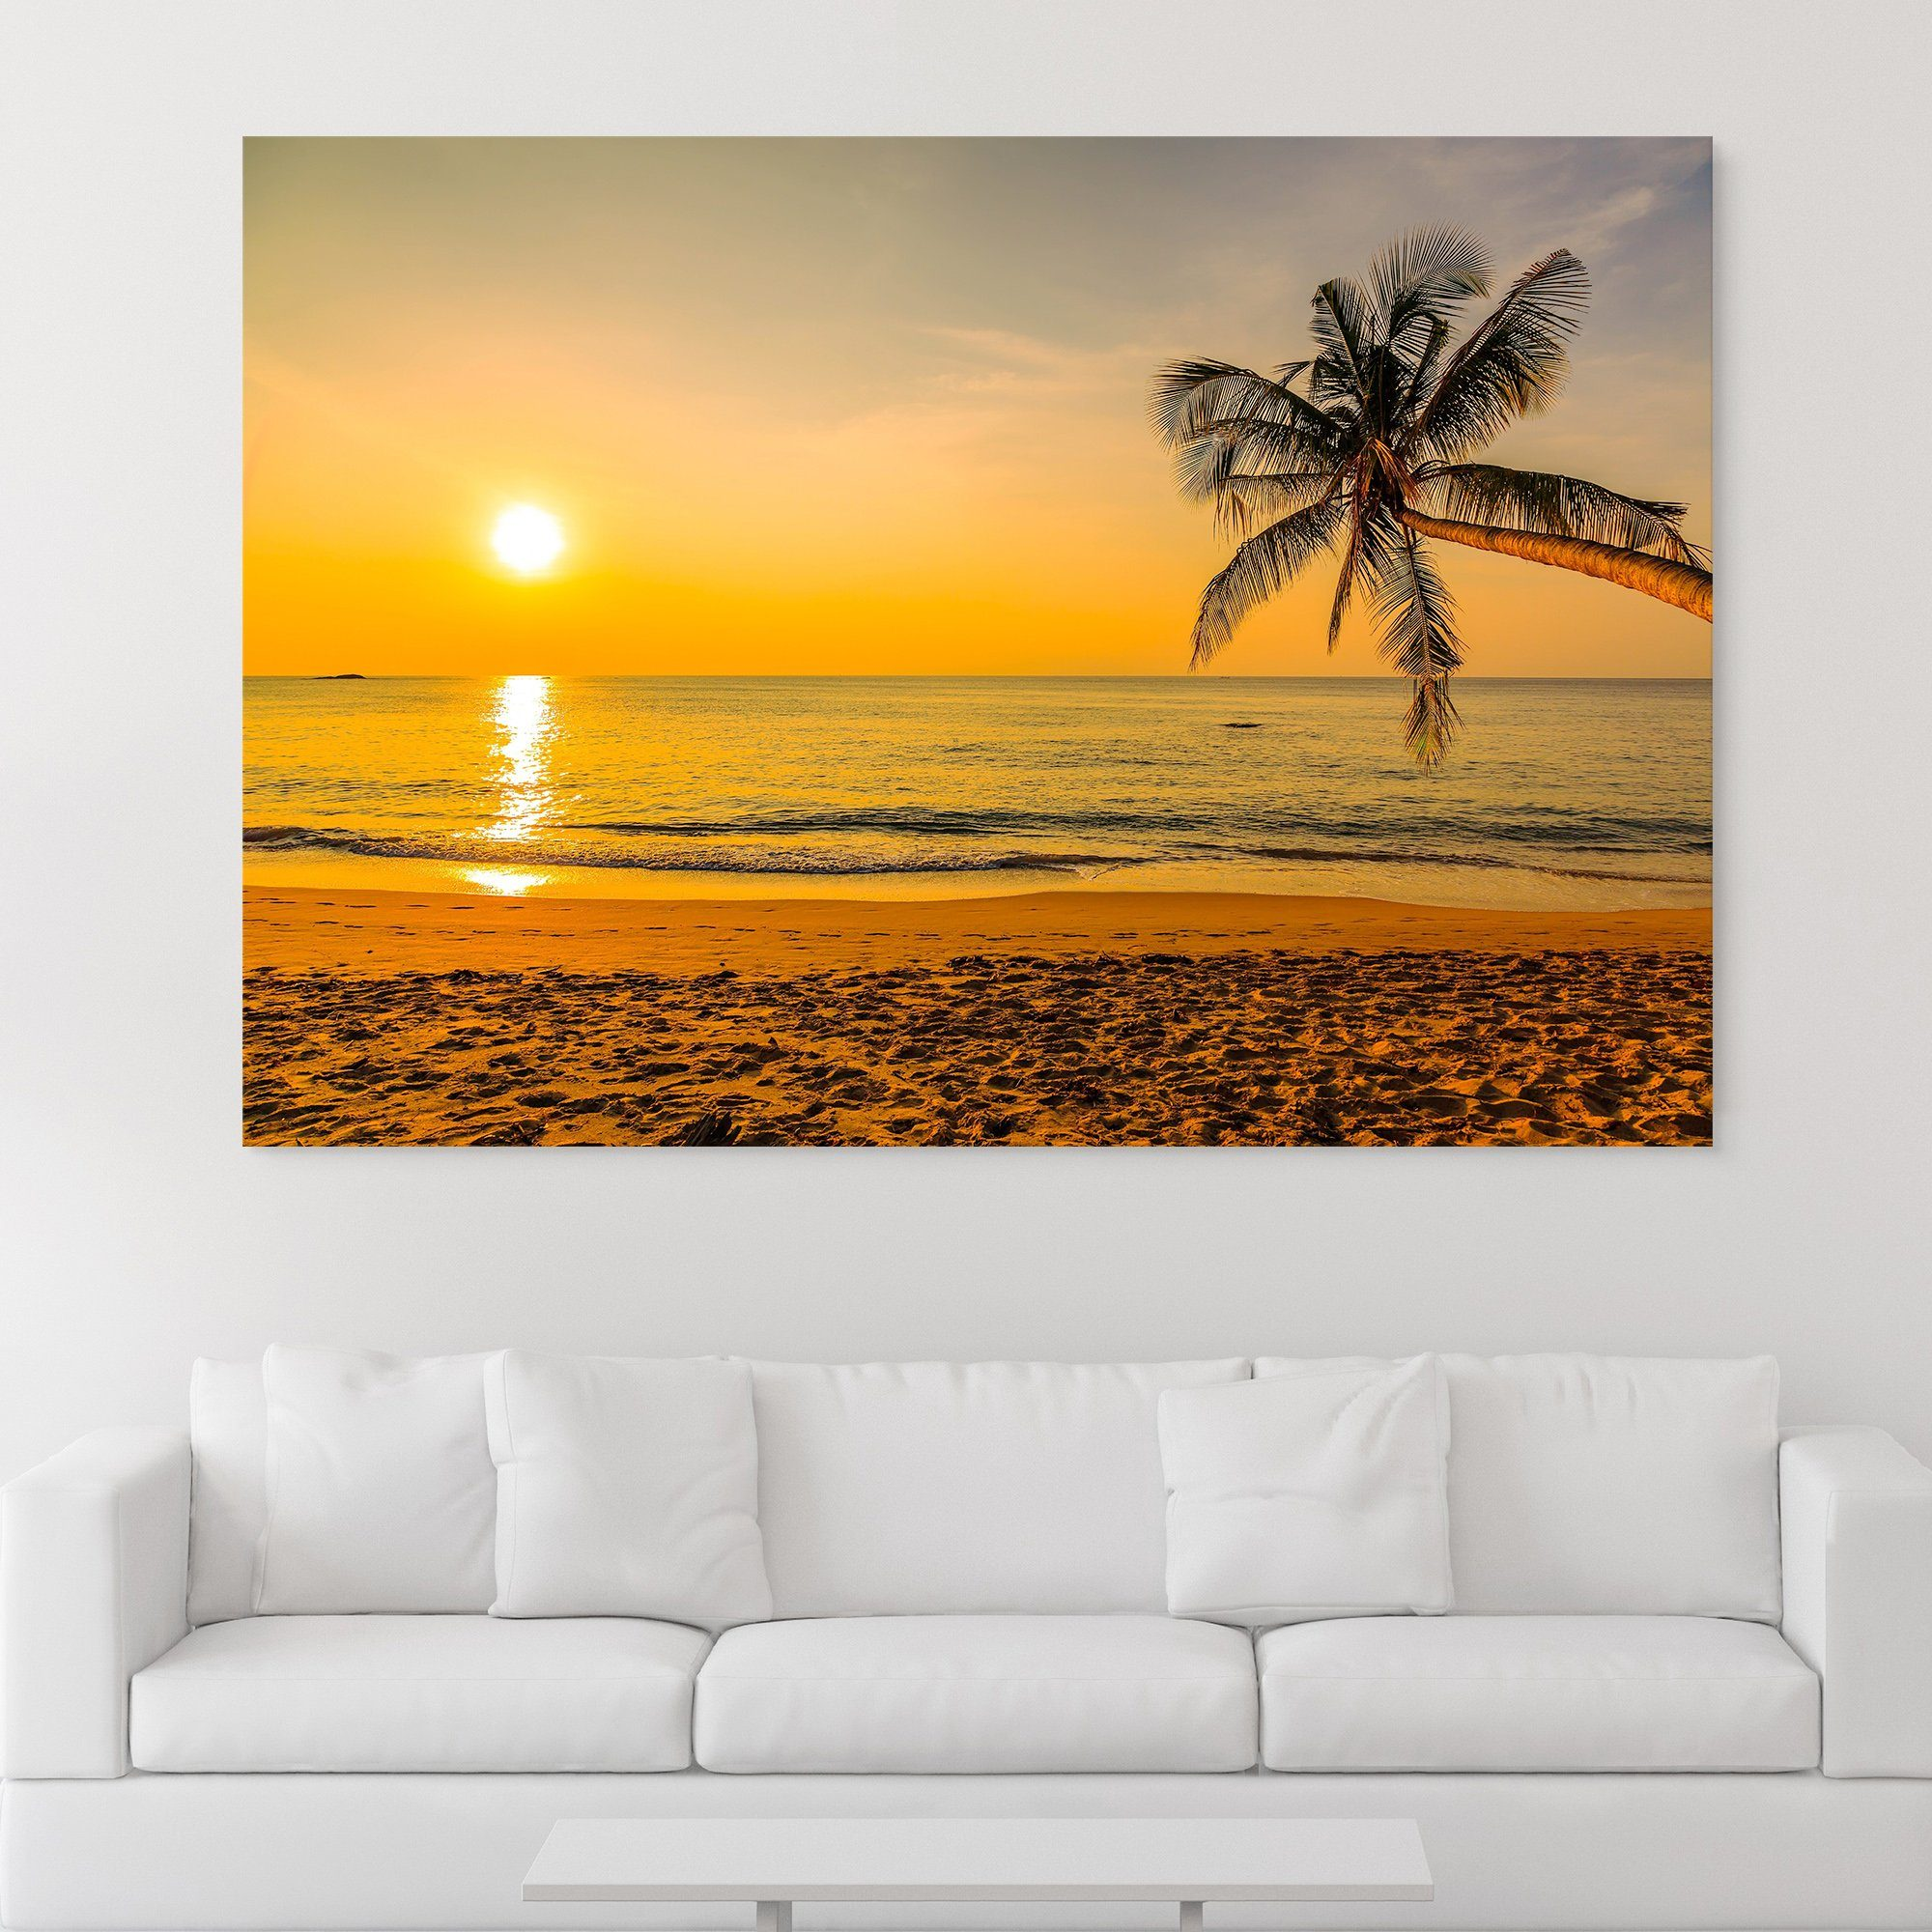 Sunset by the Beach wall art